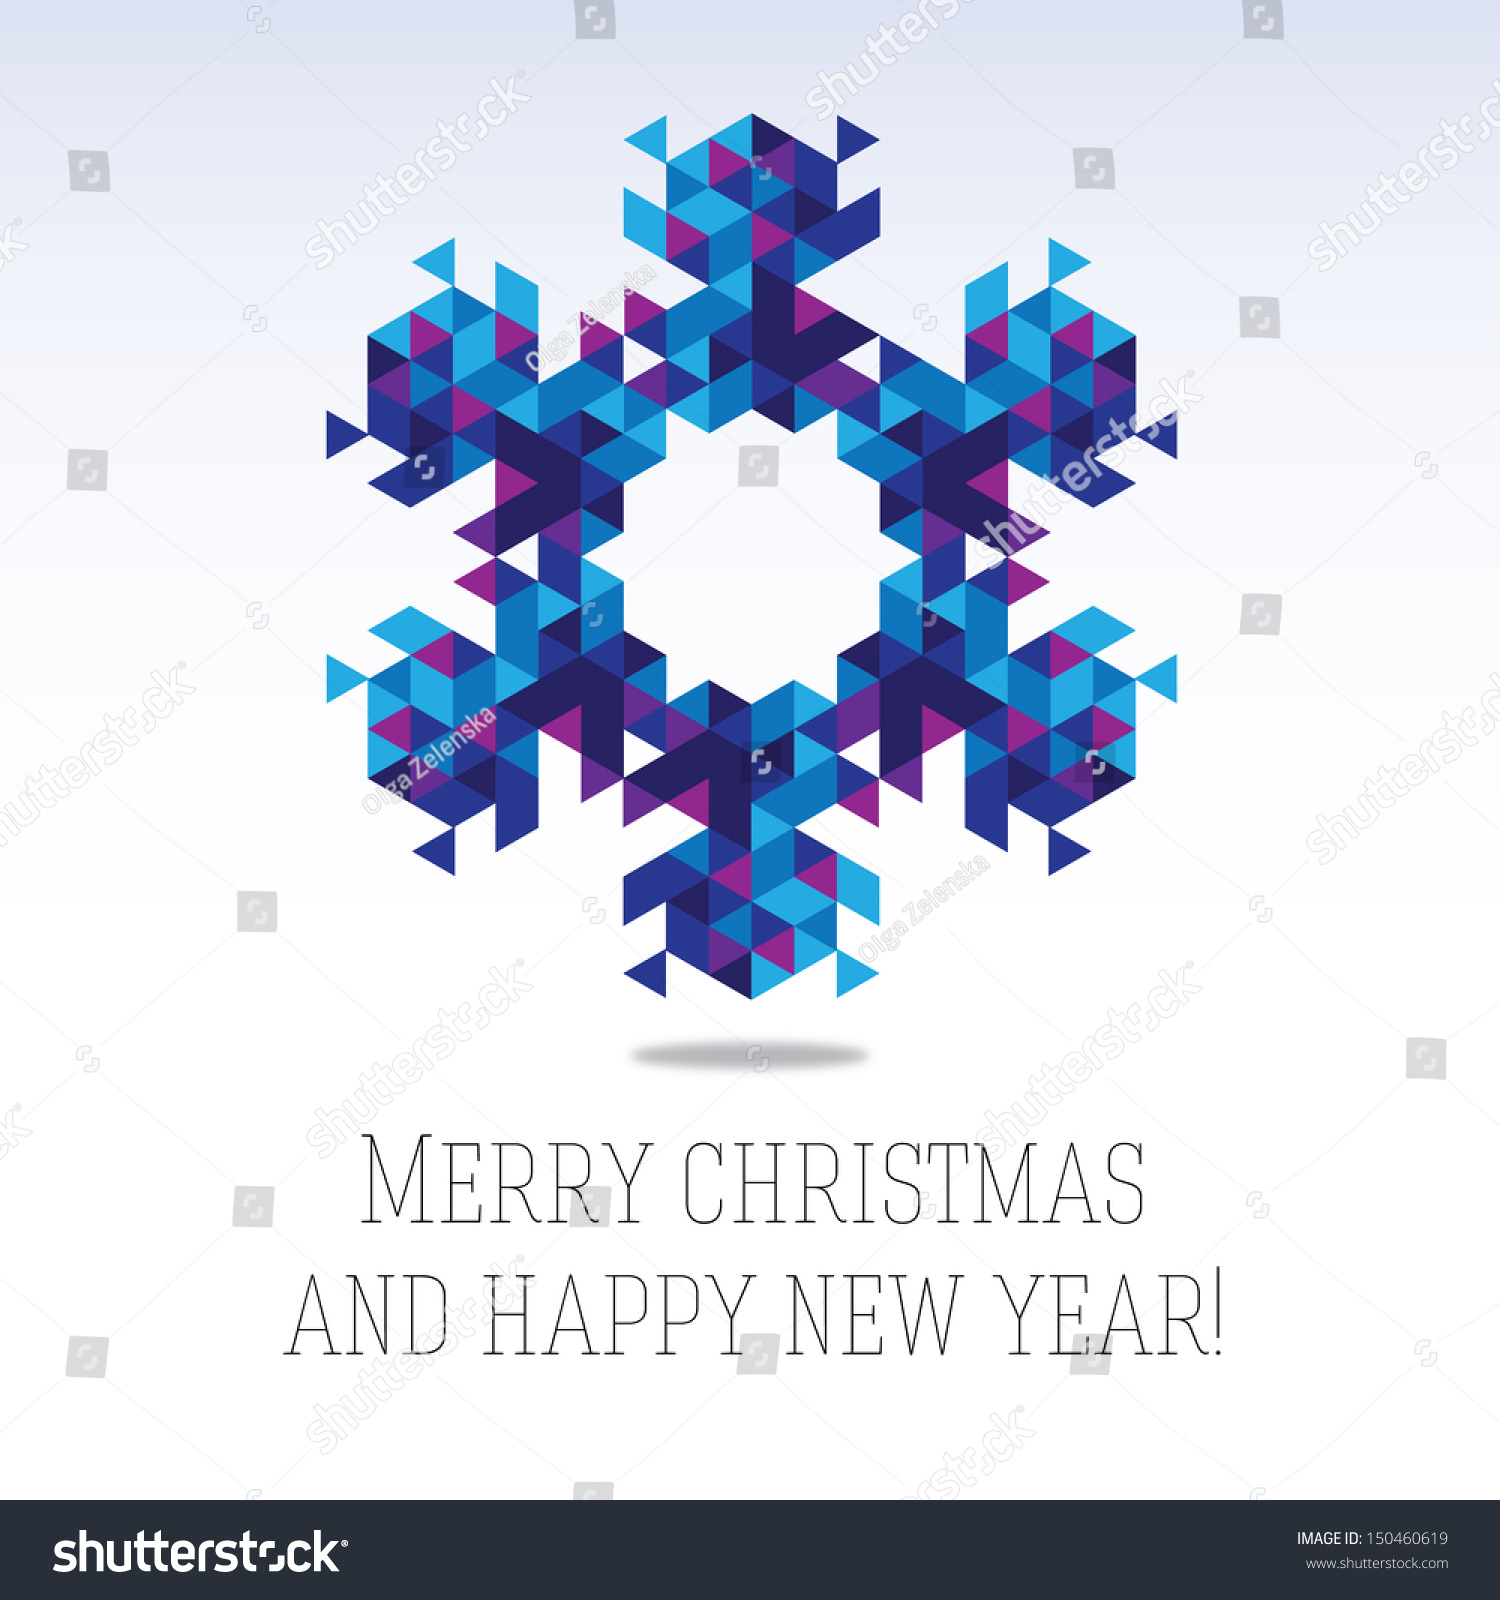 Business Greeting Christmas New Year Card Stock Vector 150460619 ...